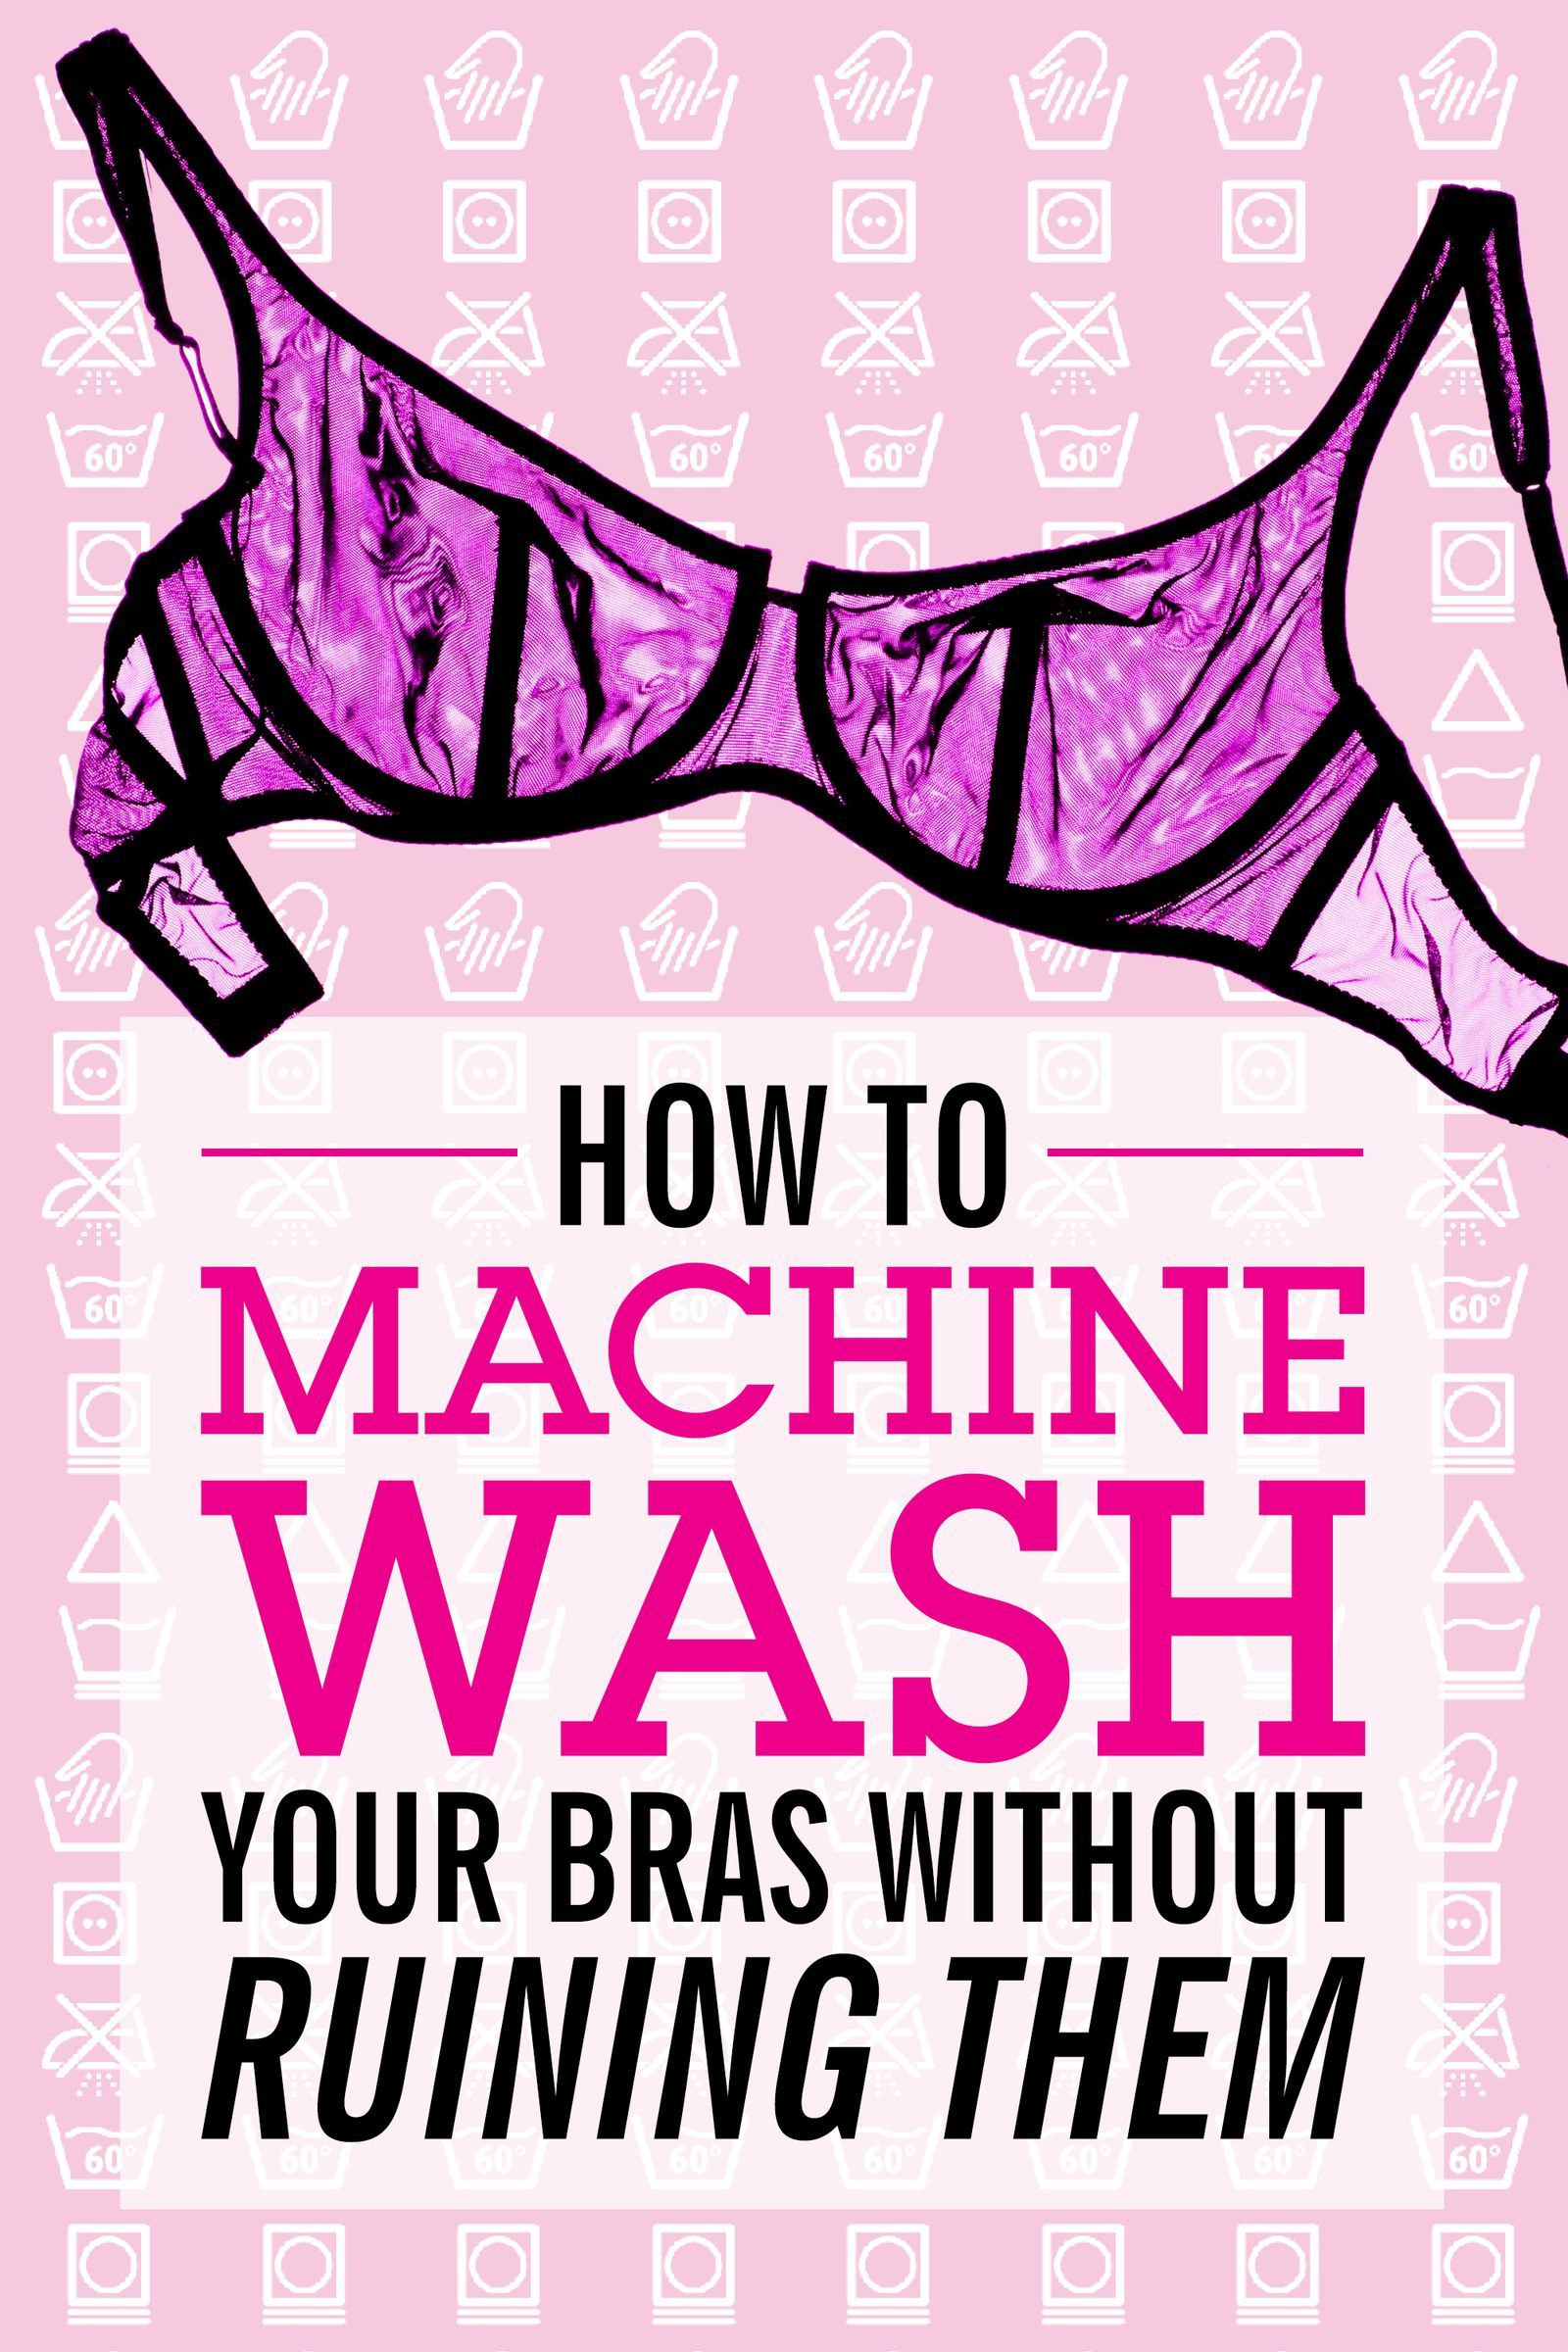 Everything You Need to Know About Washing Your Bras